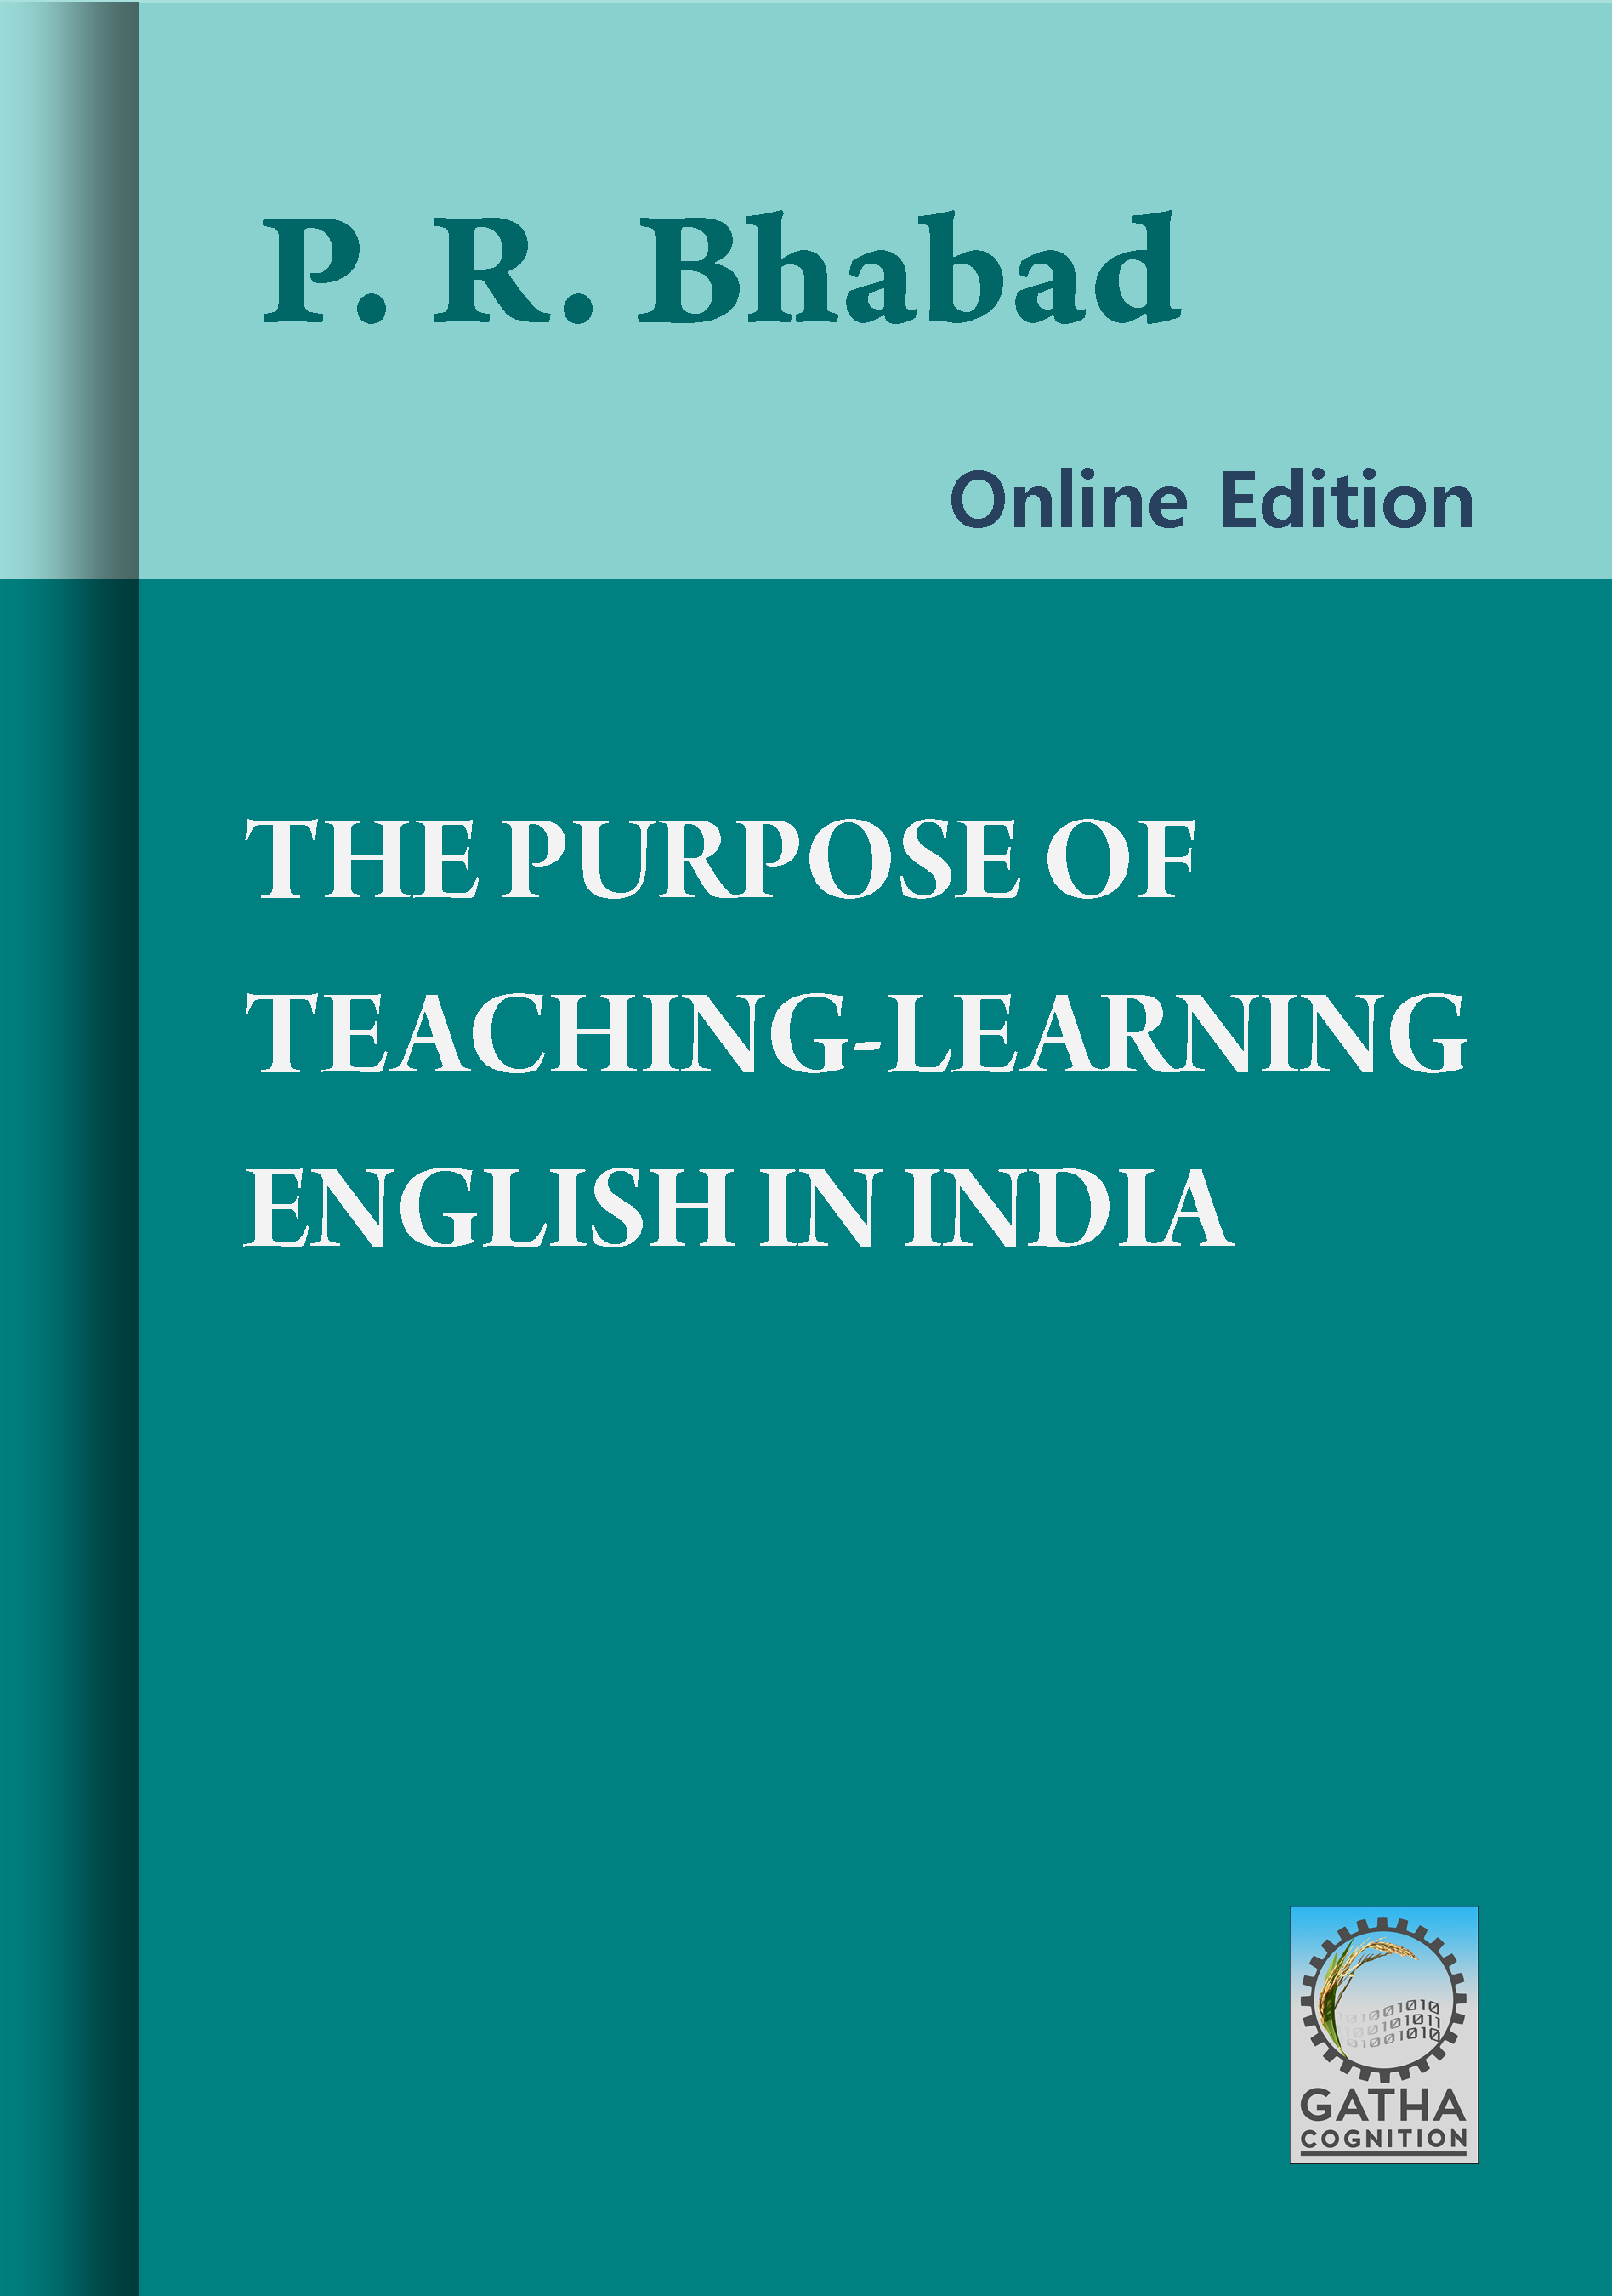 The Purpose of Teaching-Learning English in India